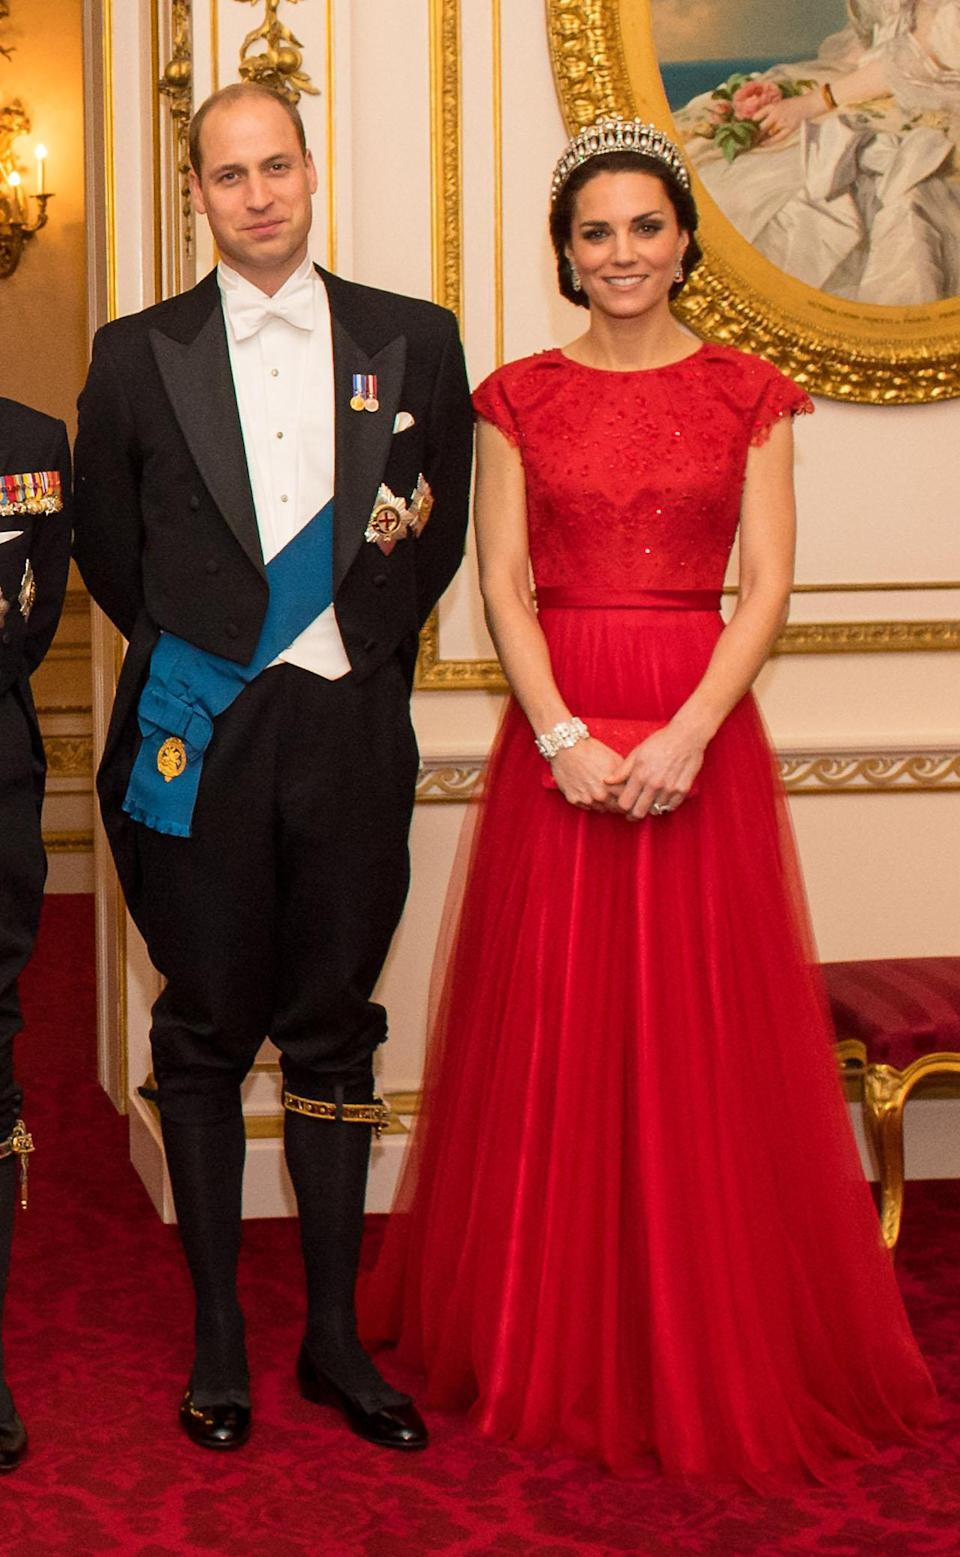 The Duchess wore the Lover's Knot tiara at the Diplomatic Reception in December 2016. She sported the red Jenny Packham gown, seen at the China State Dinner in 2015 (PA)